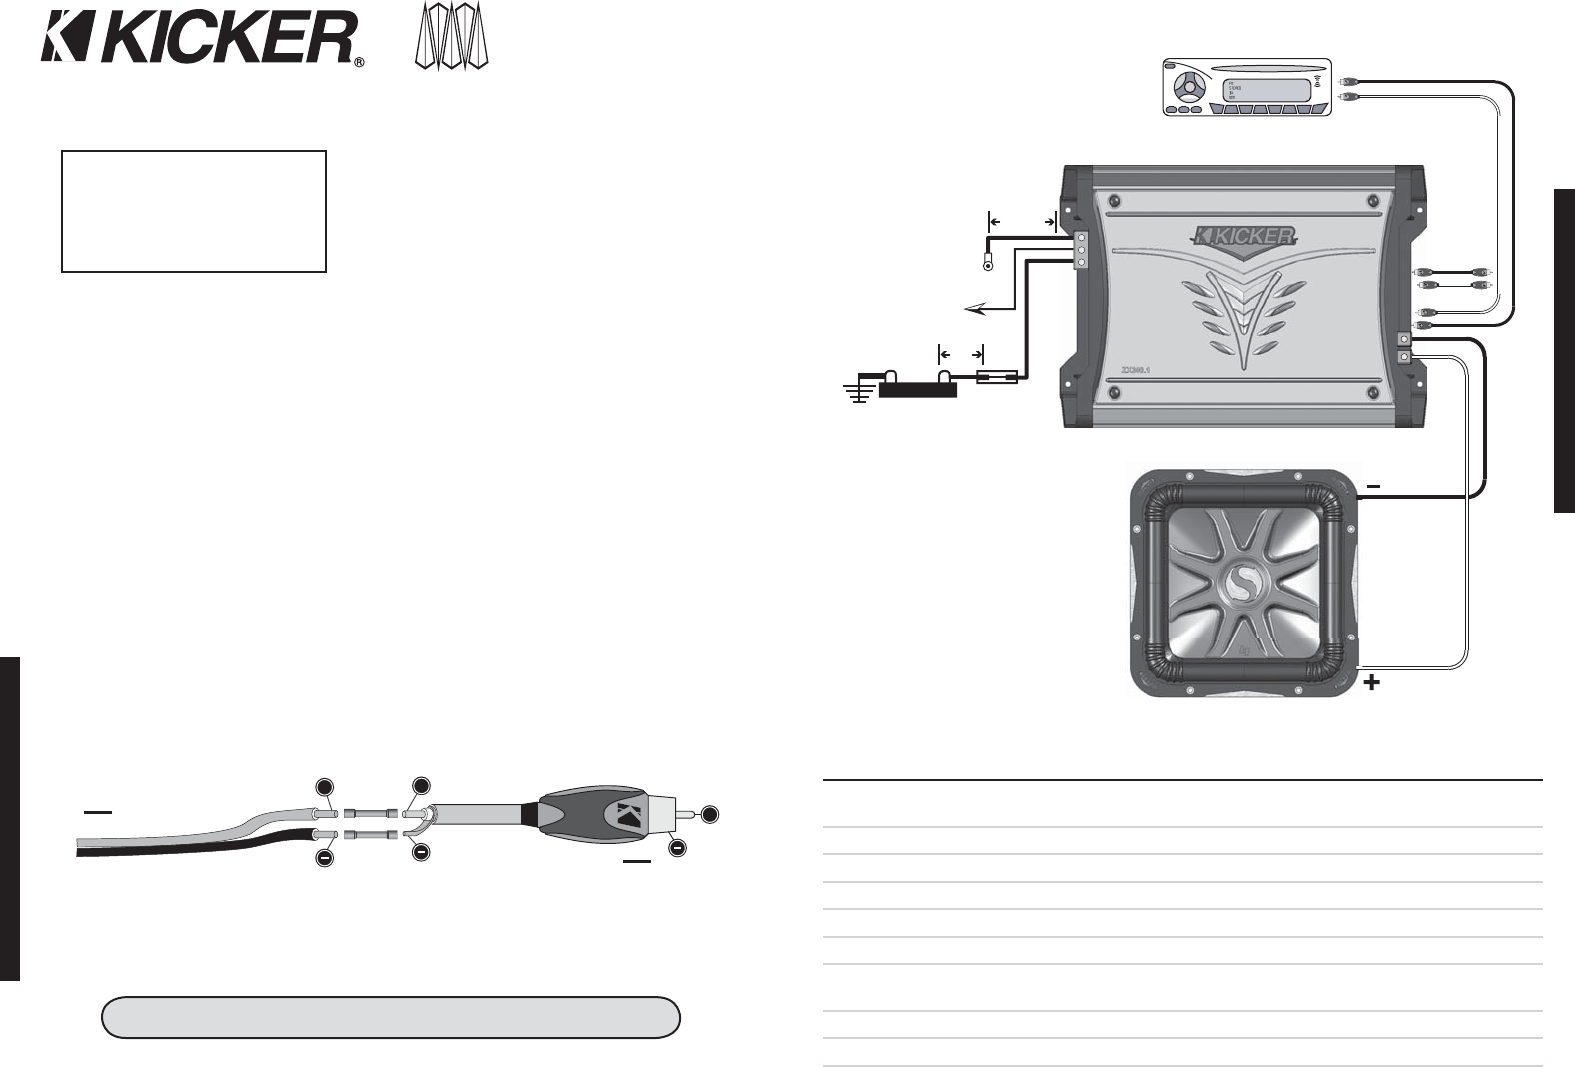 Kicker L7 Wiring Diagram on 3 dual 4 ohm subs